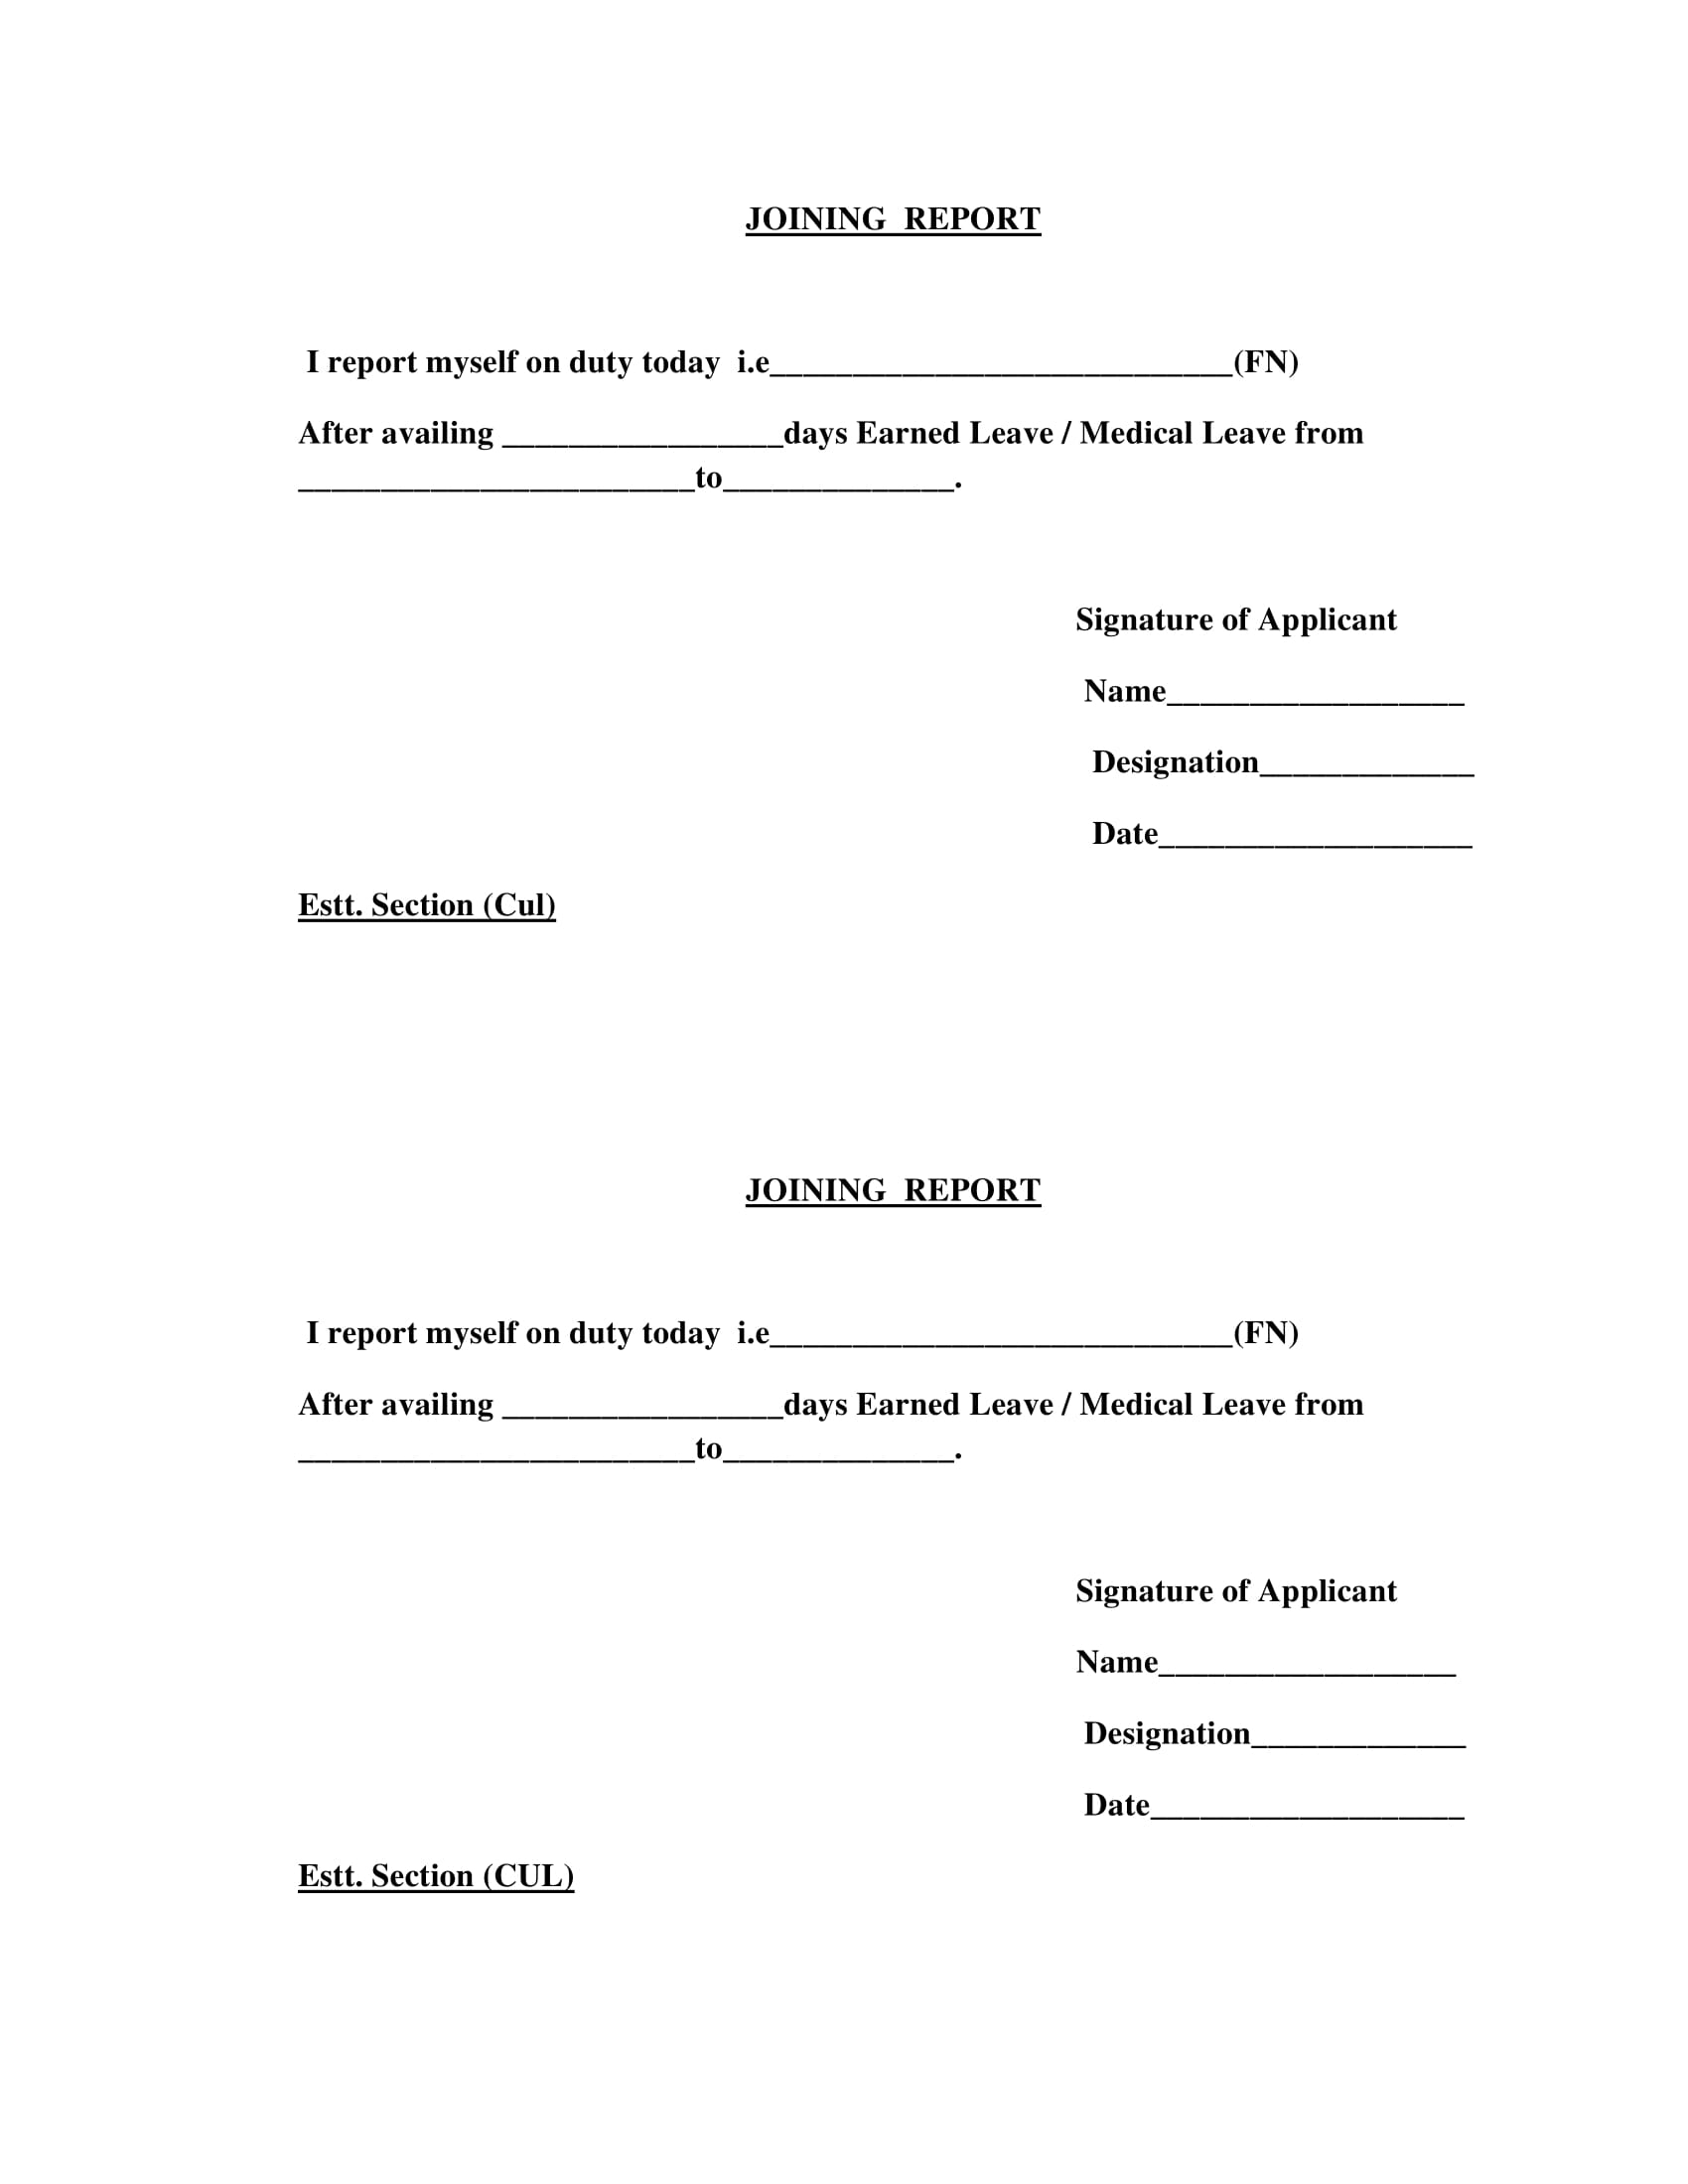 simple joining report form 1